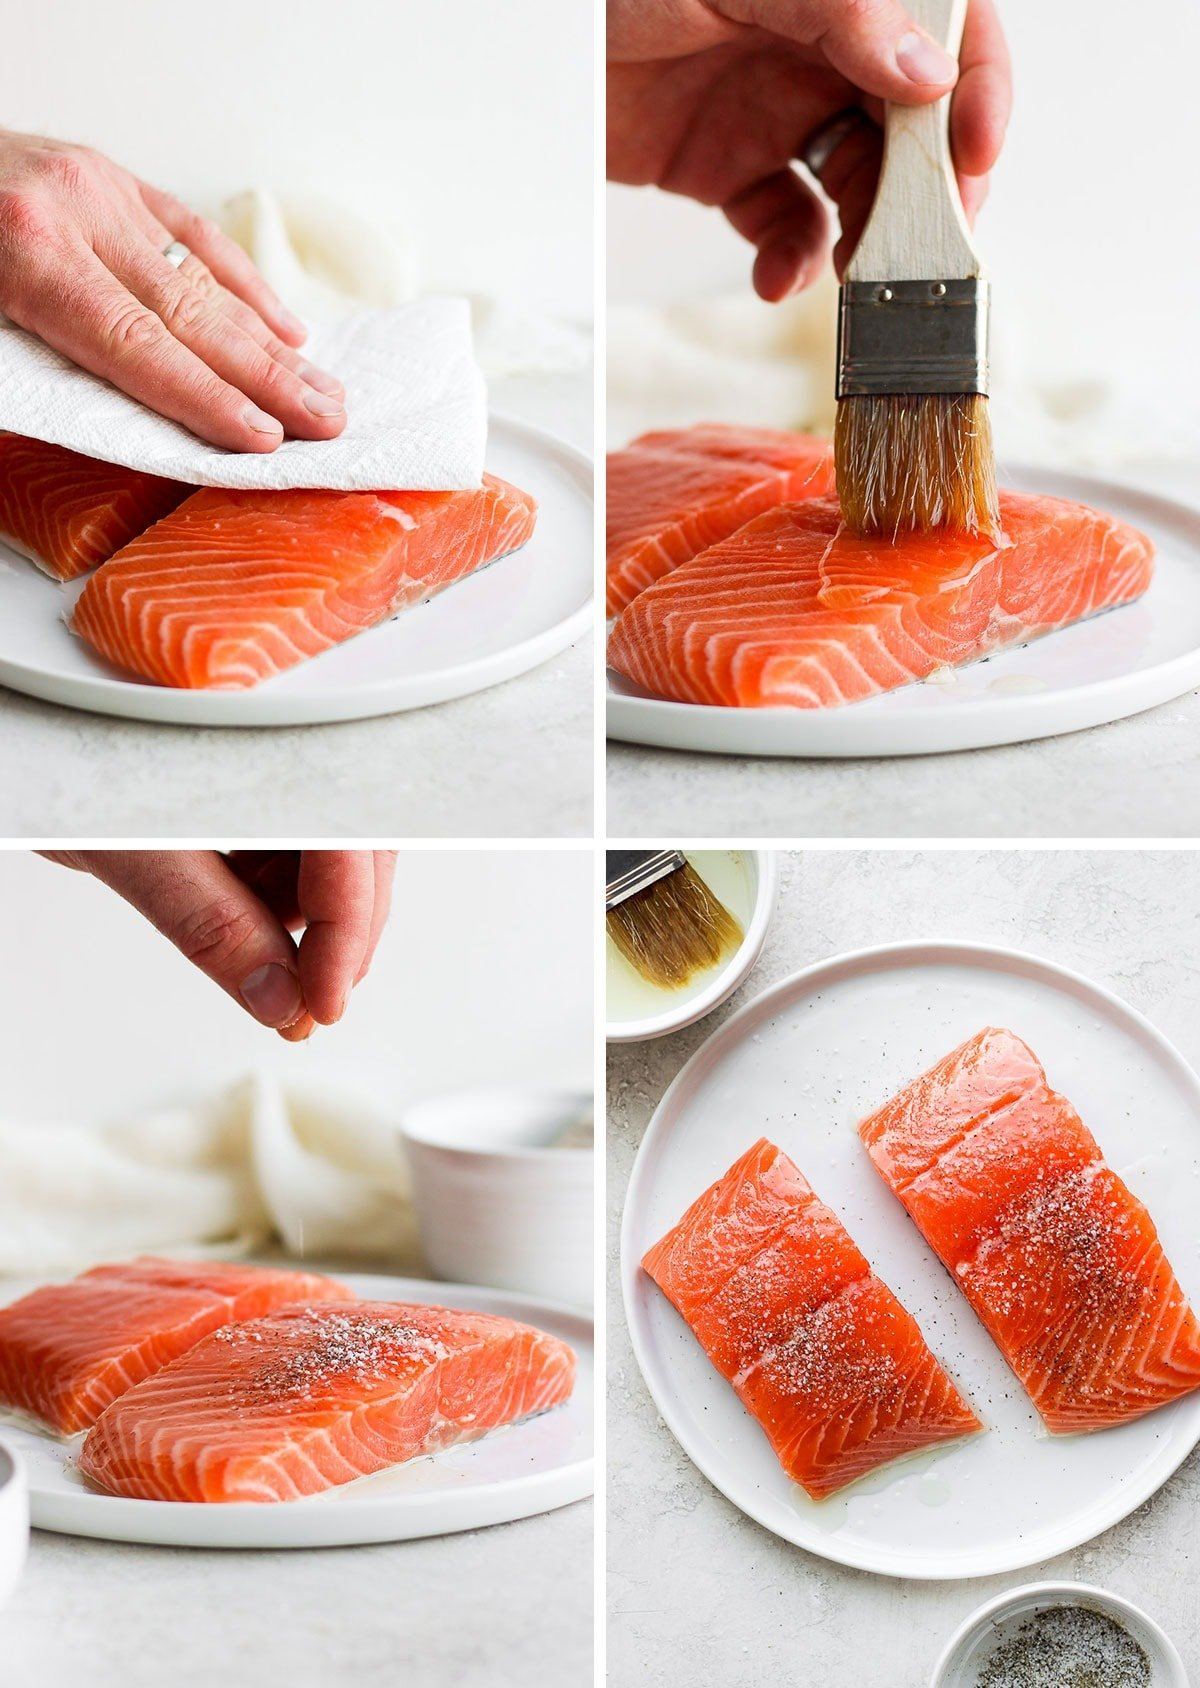 Raw salmon on a plate being seasoned with salt and pepper and brushed with olive oil